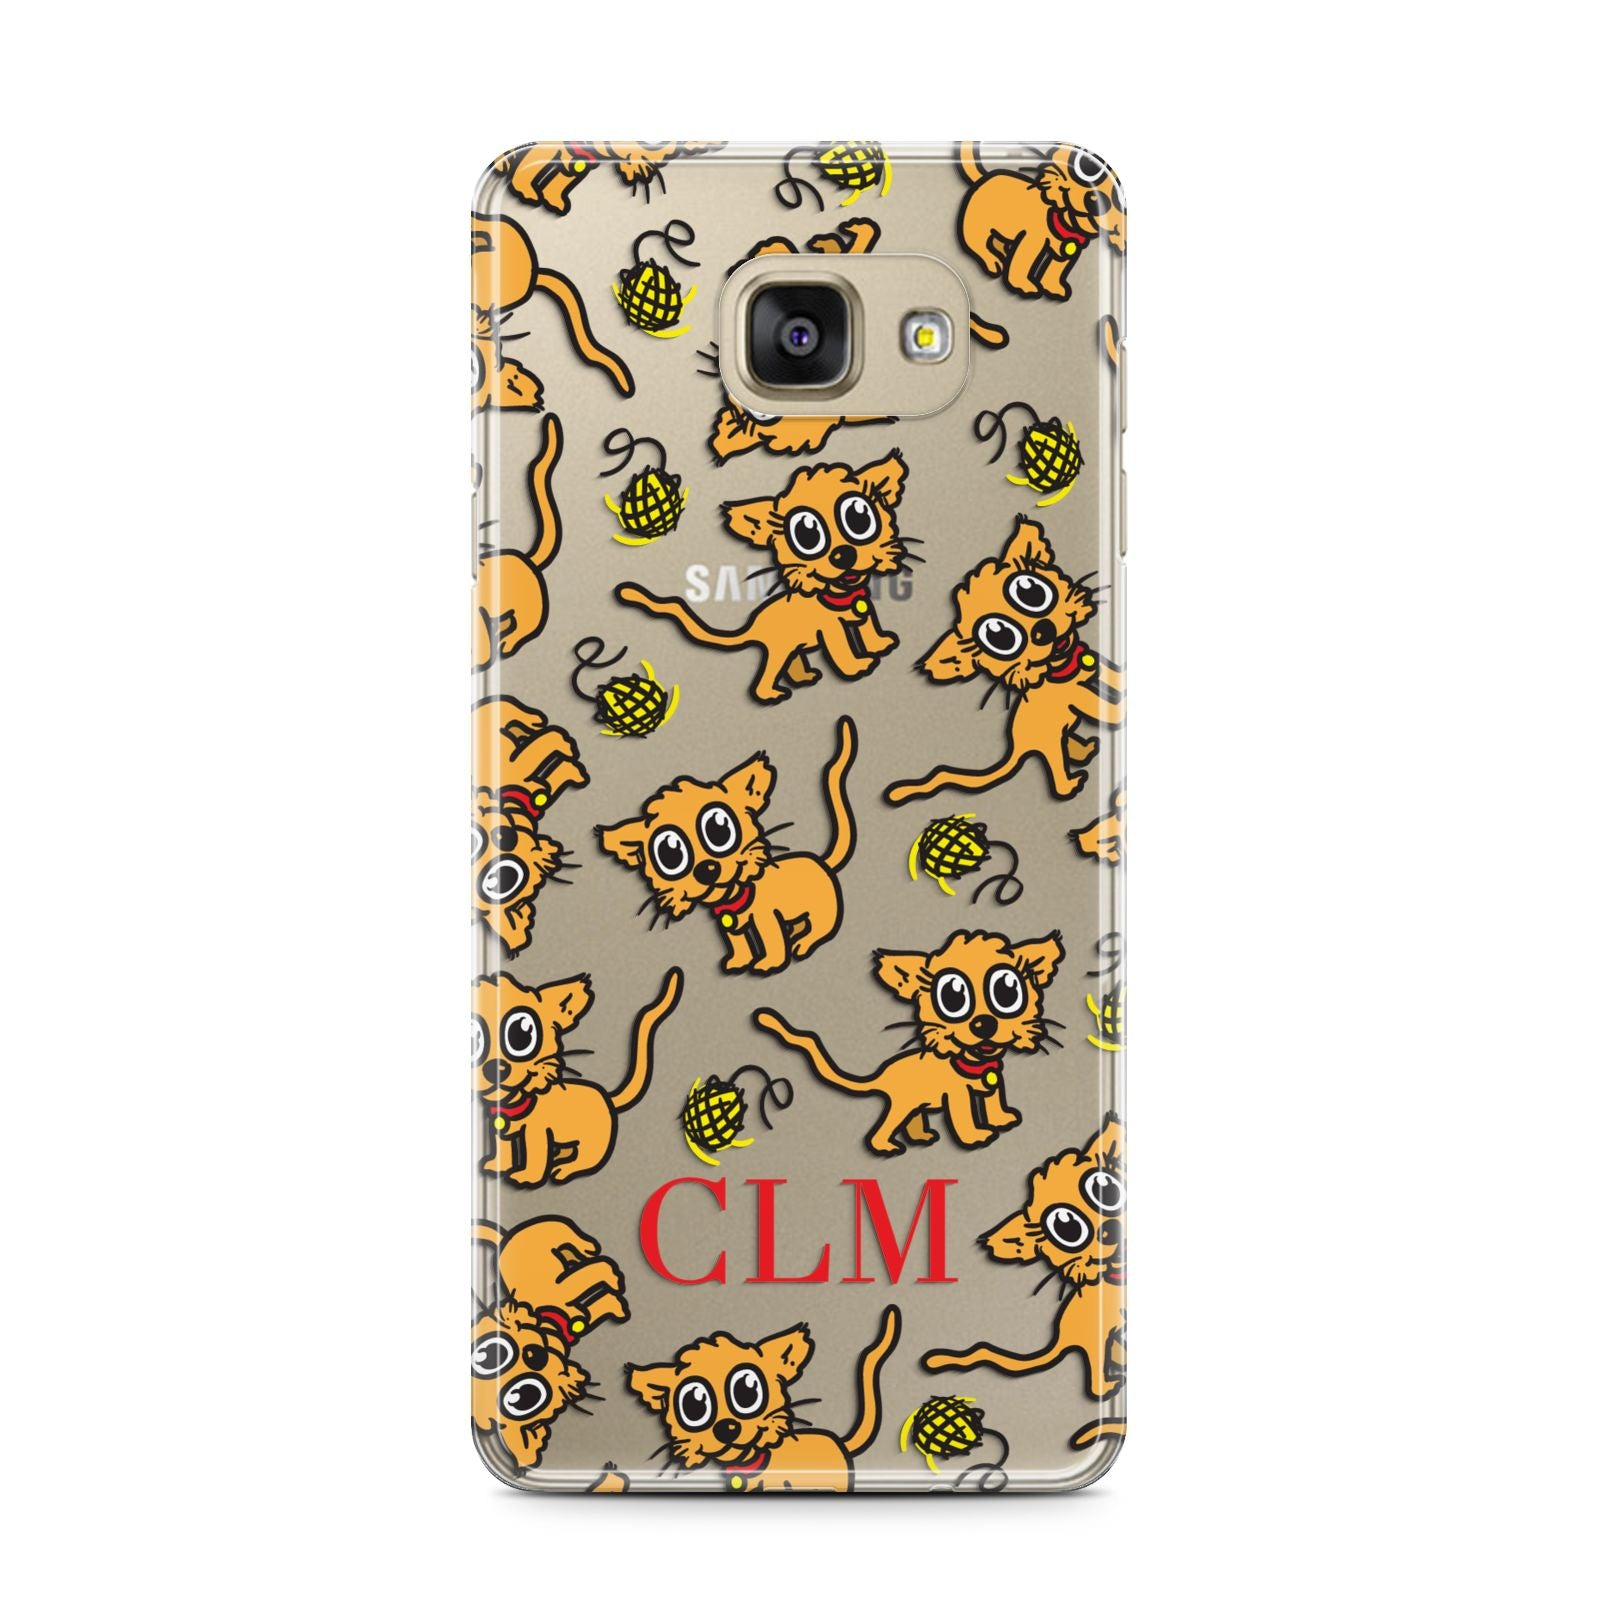 Personalised Puppy Initials Clear Samsung Galaxy A7 2016 Case on gold phone